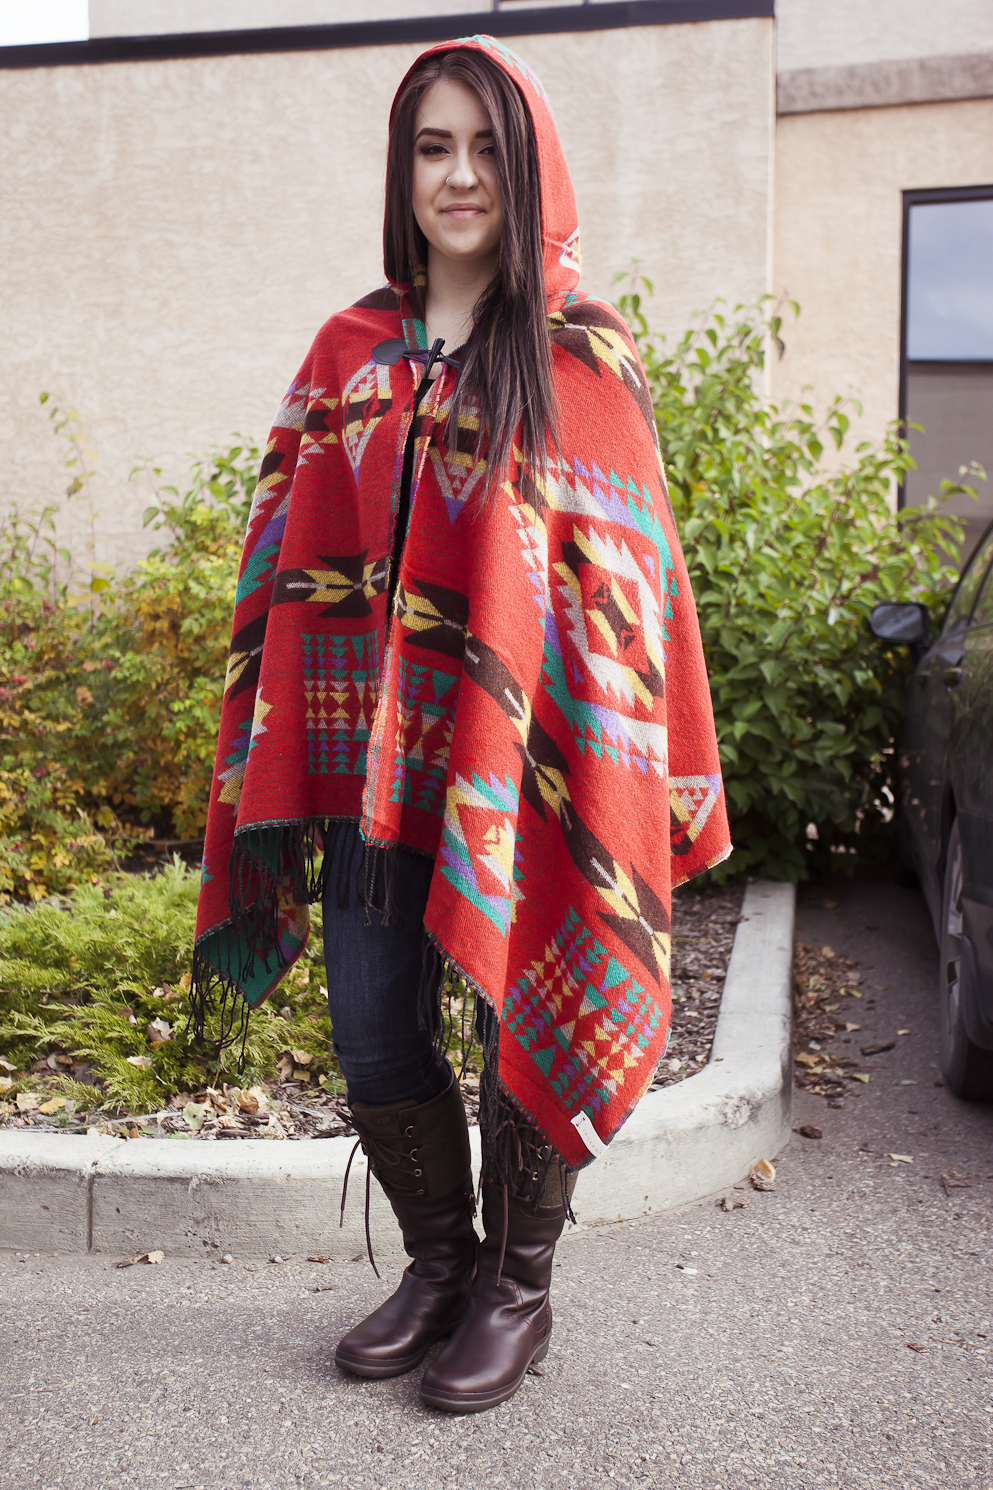 bella maas boutique sherwood park st albert fall 2014 jackson rowe poncho ugg boots jeans 01